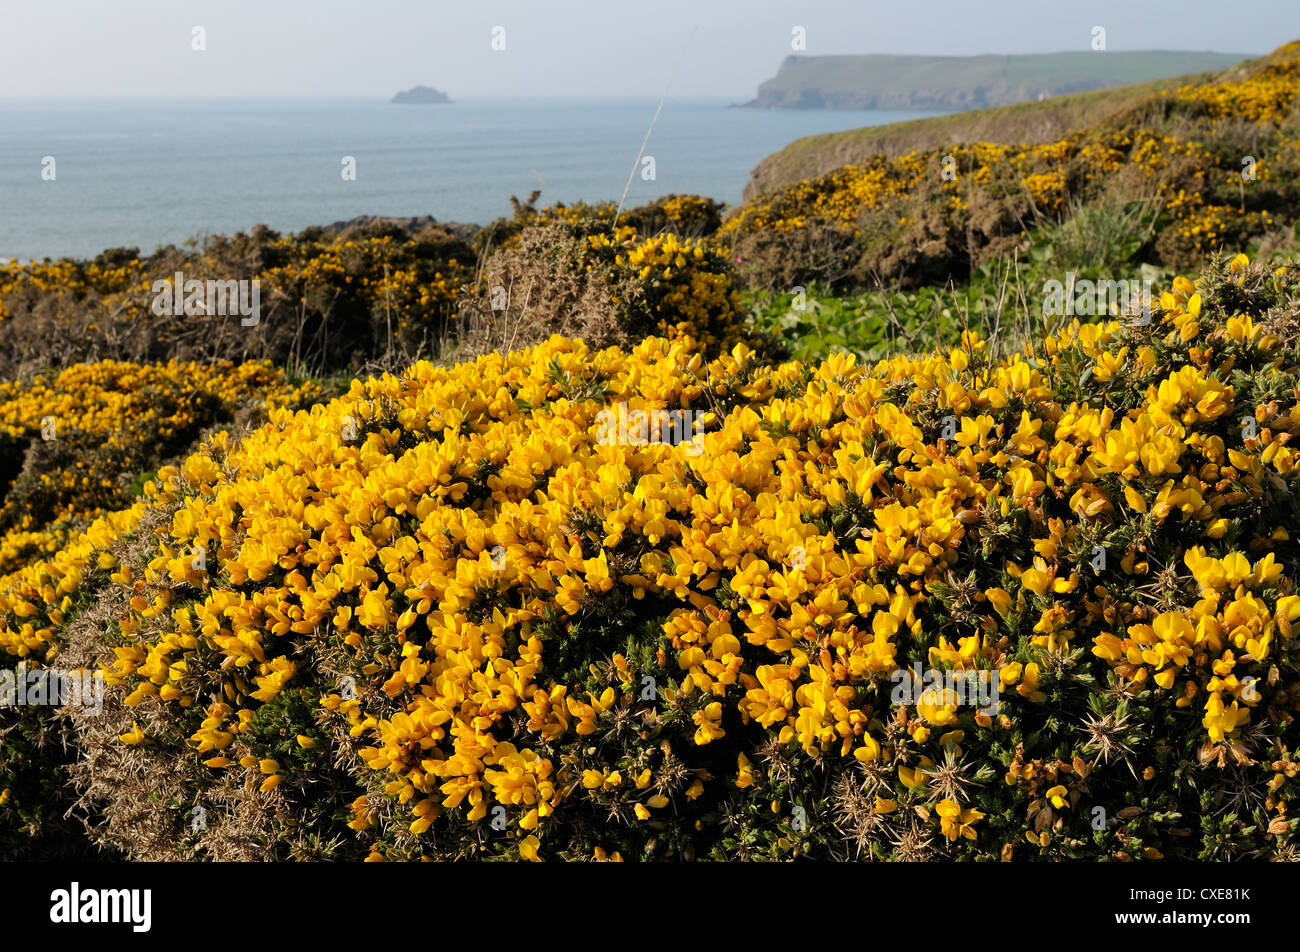 Gorse bushes (Ulex europaeus) flowering on cliff top with Pentire Head in the background, Polzeath, Cornwall, England - Stock Image